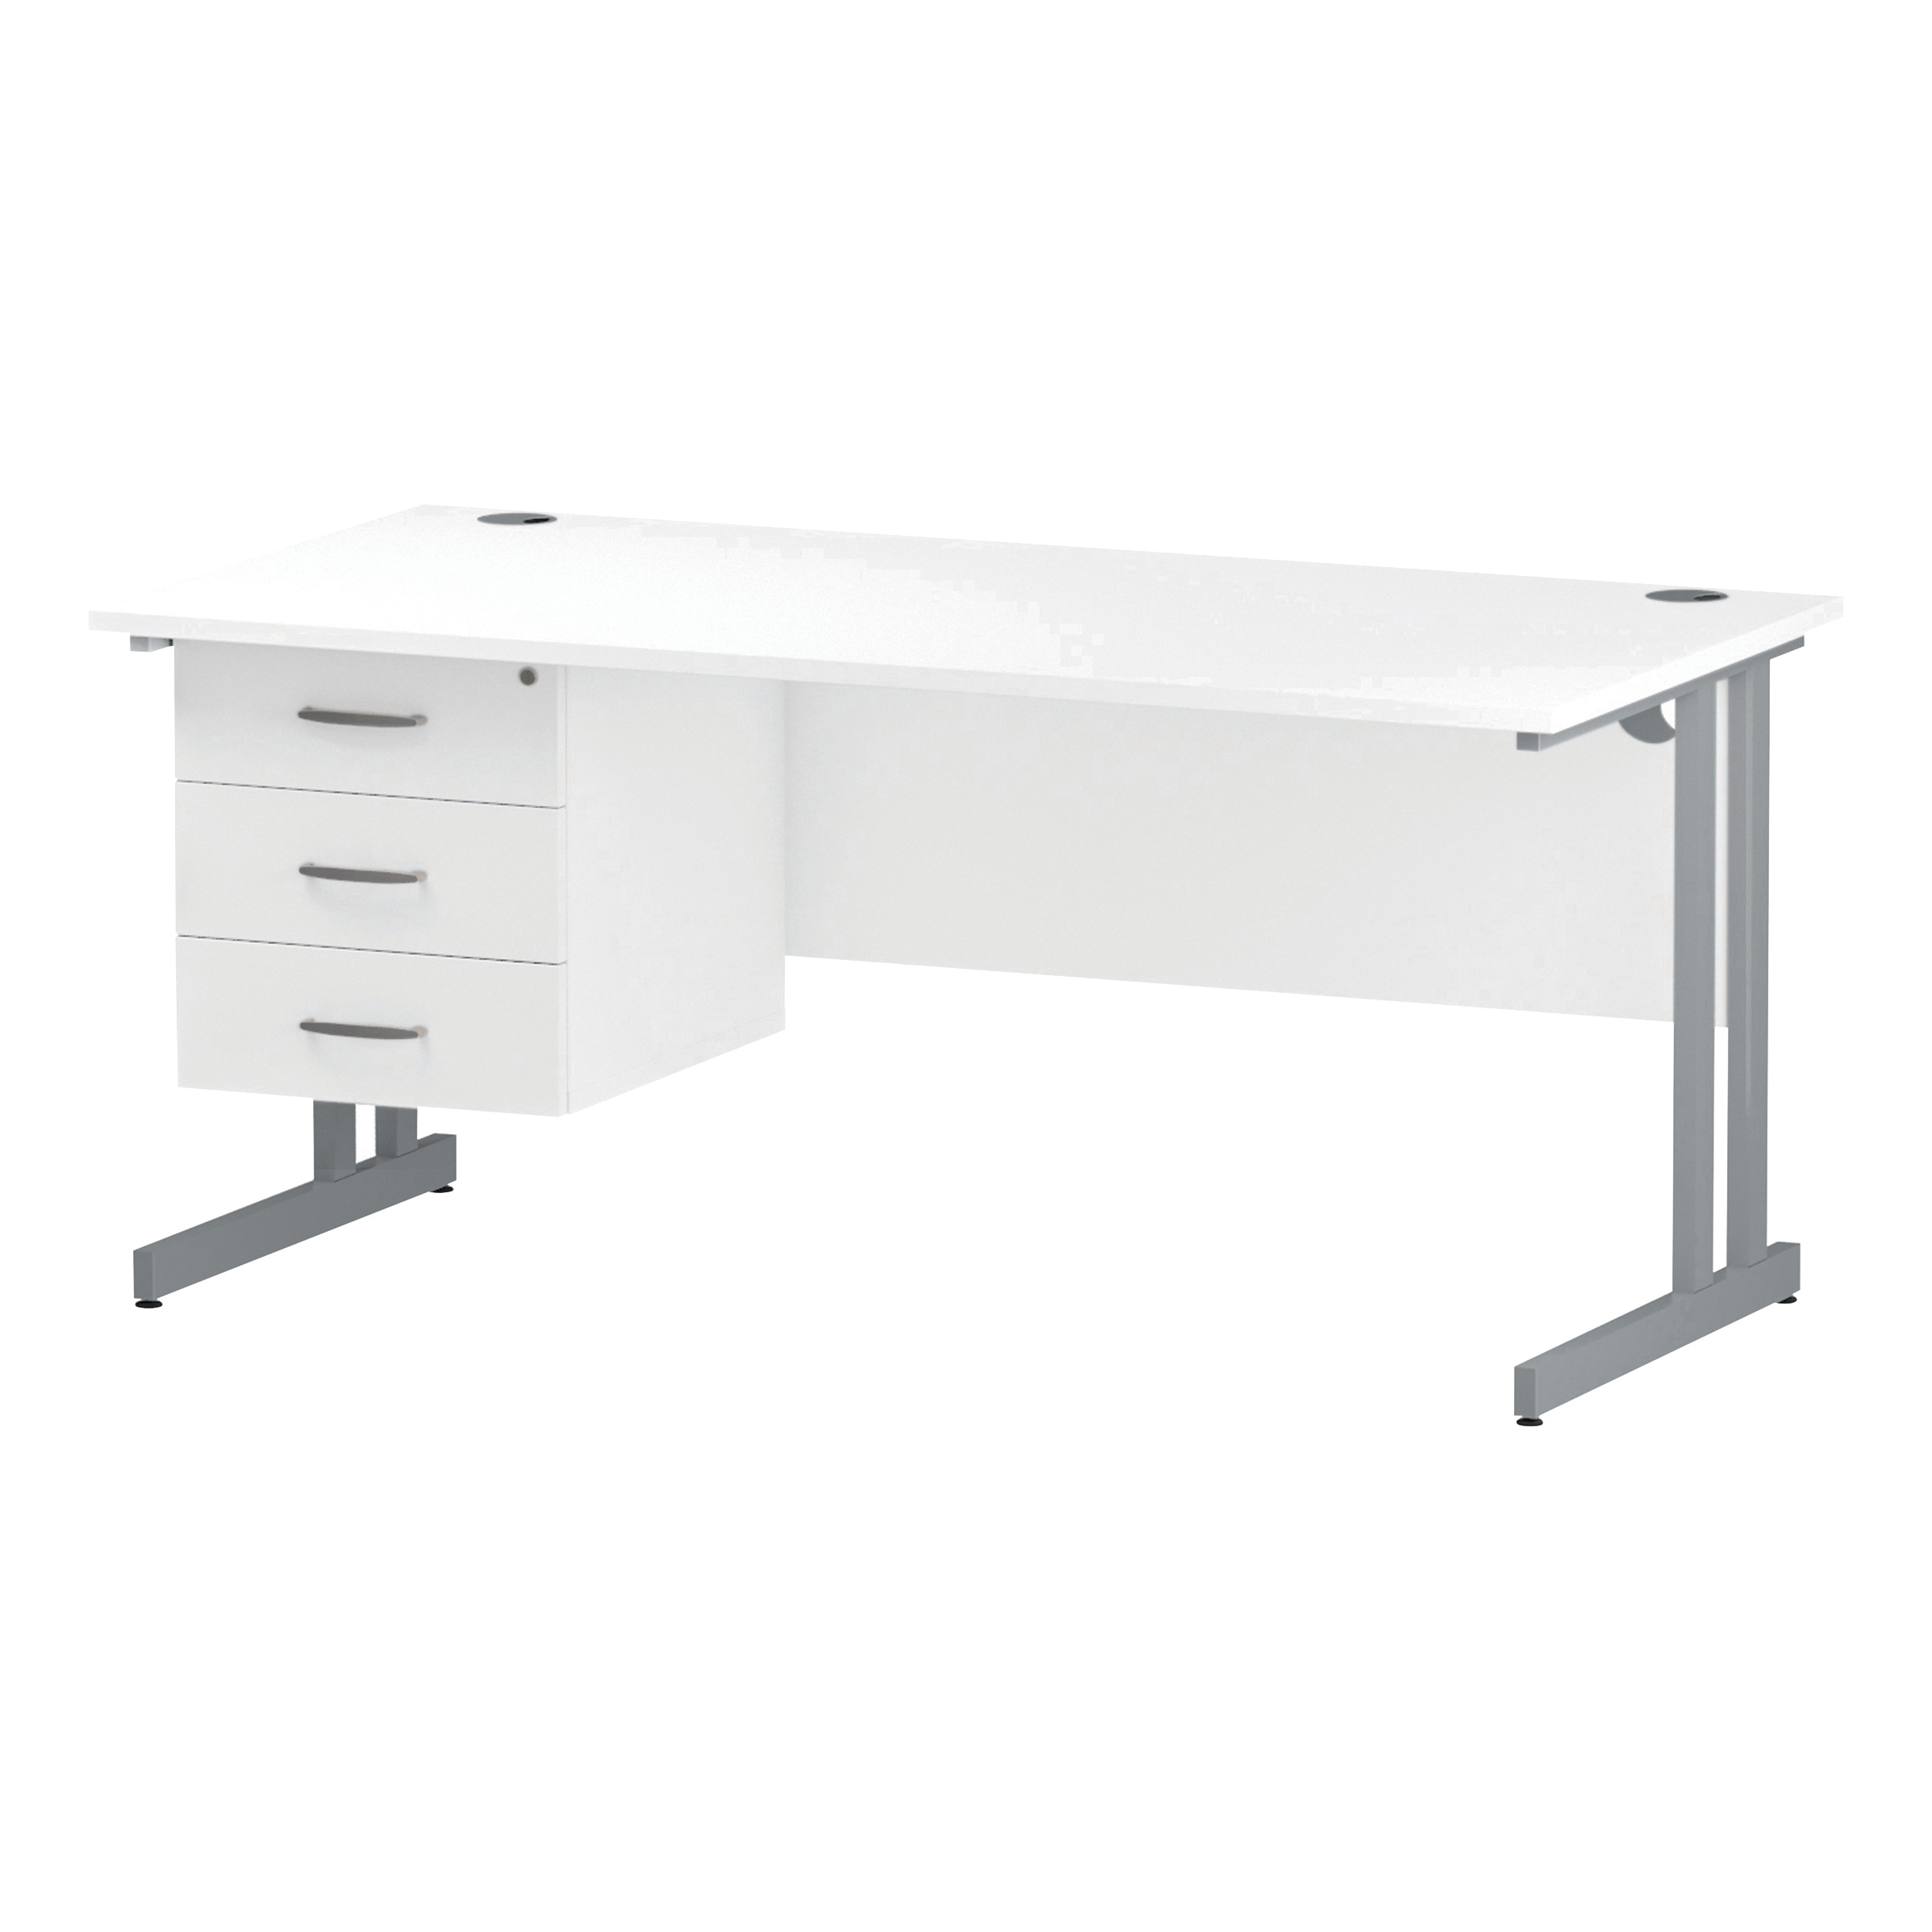 Trexus Rectangular Desk Silver Cantilever Leg 1600x800mm Fixed Pedestal 3 Drawers White Ref I002215